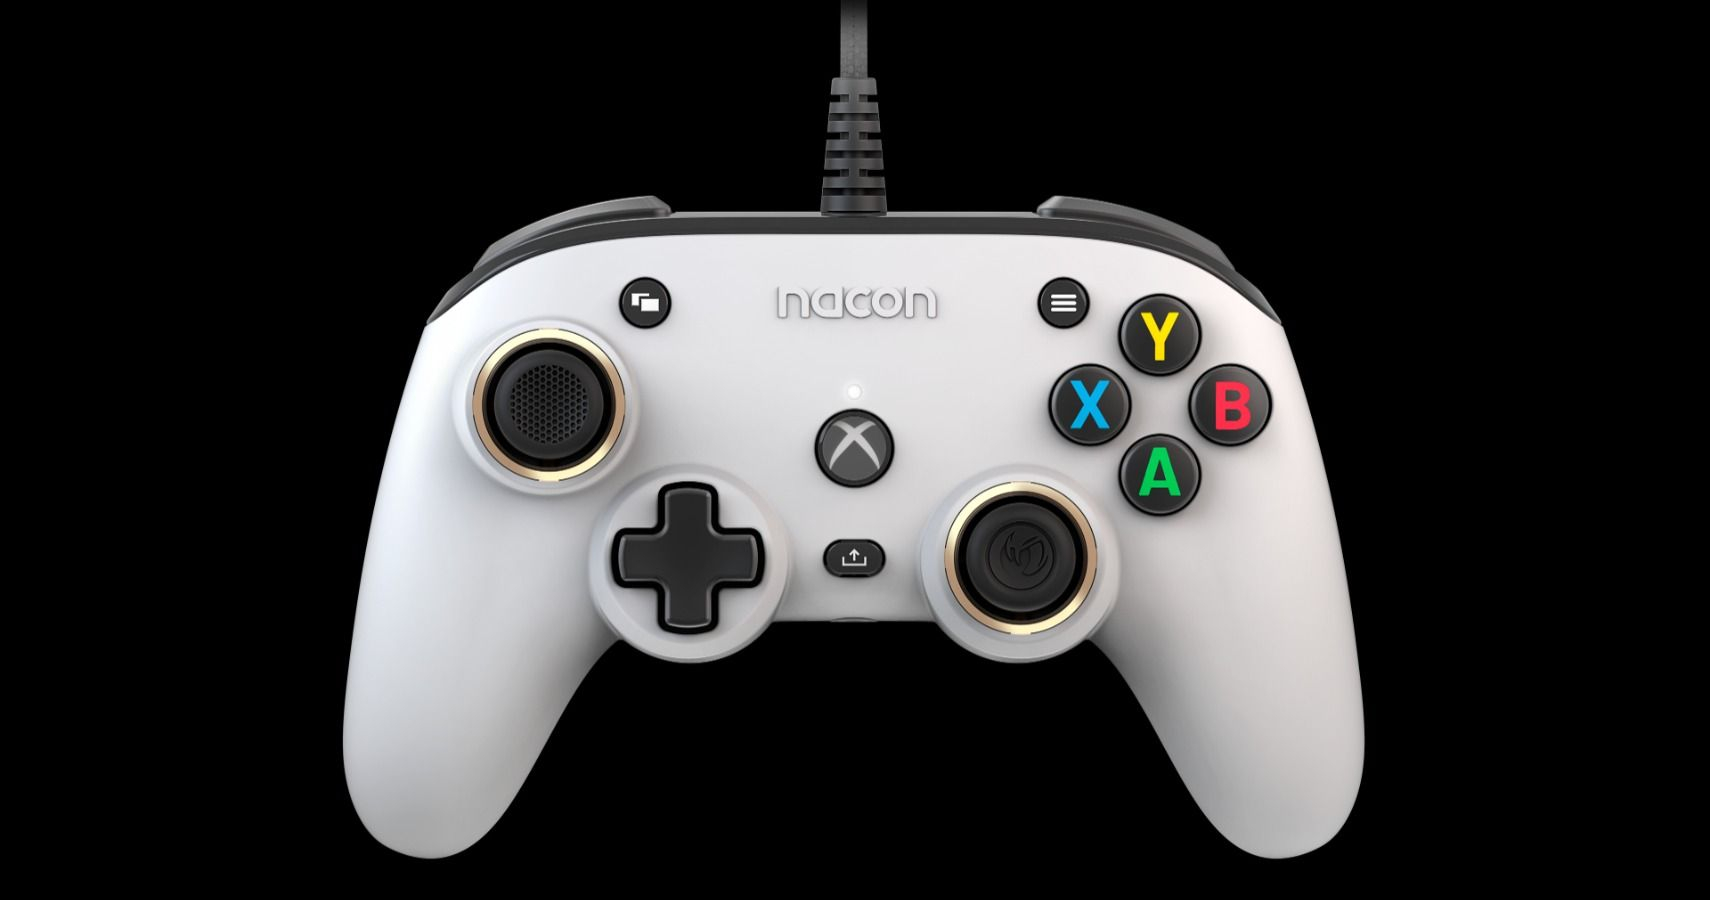 Nacon Pro Compact Review – A Decent Backup Controller For Xbox Series X